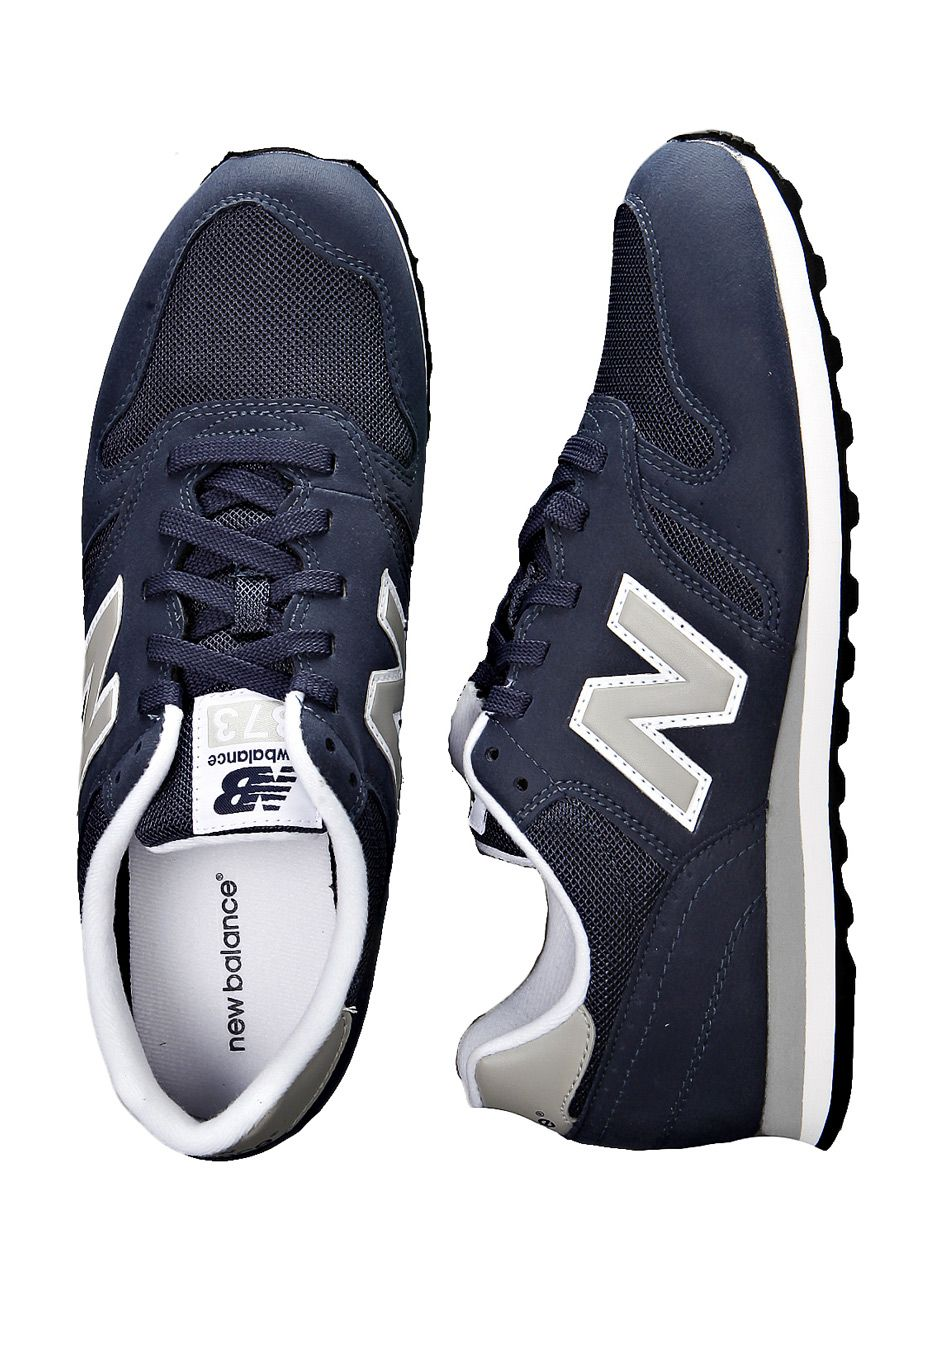 new balance 373 navy blue